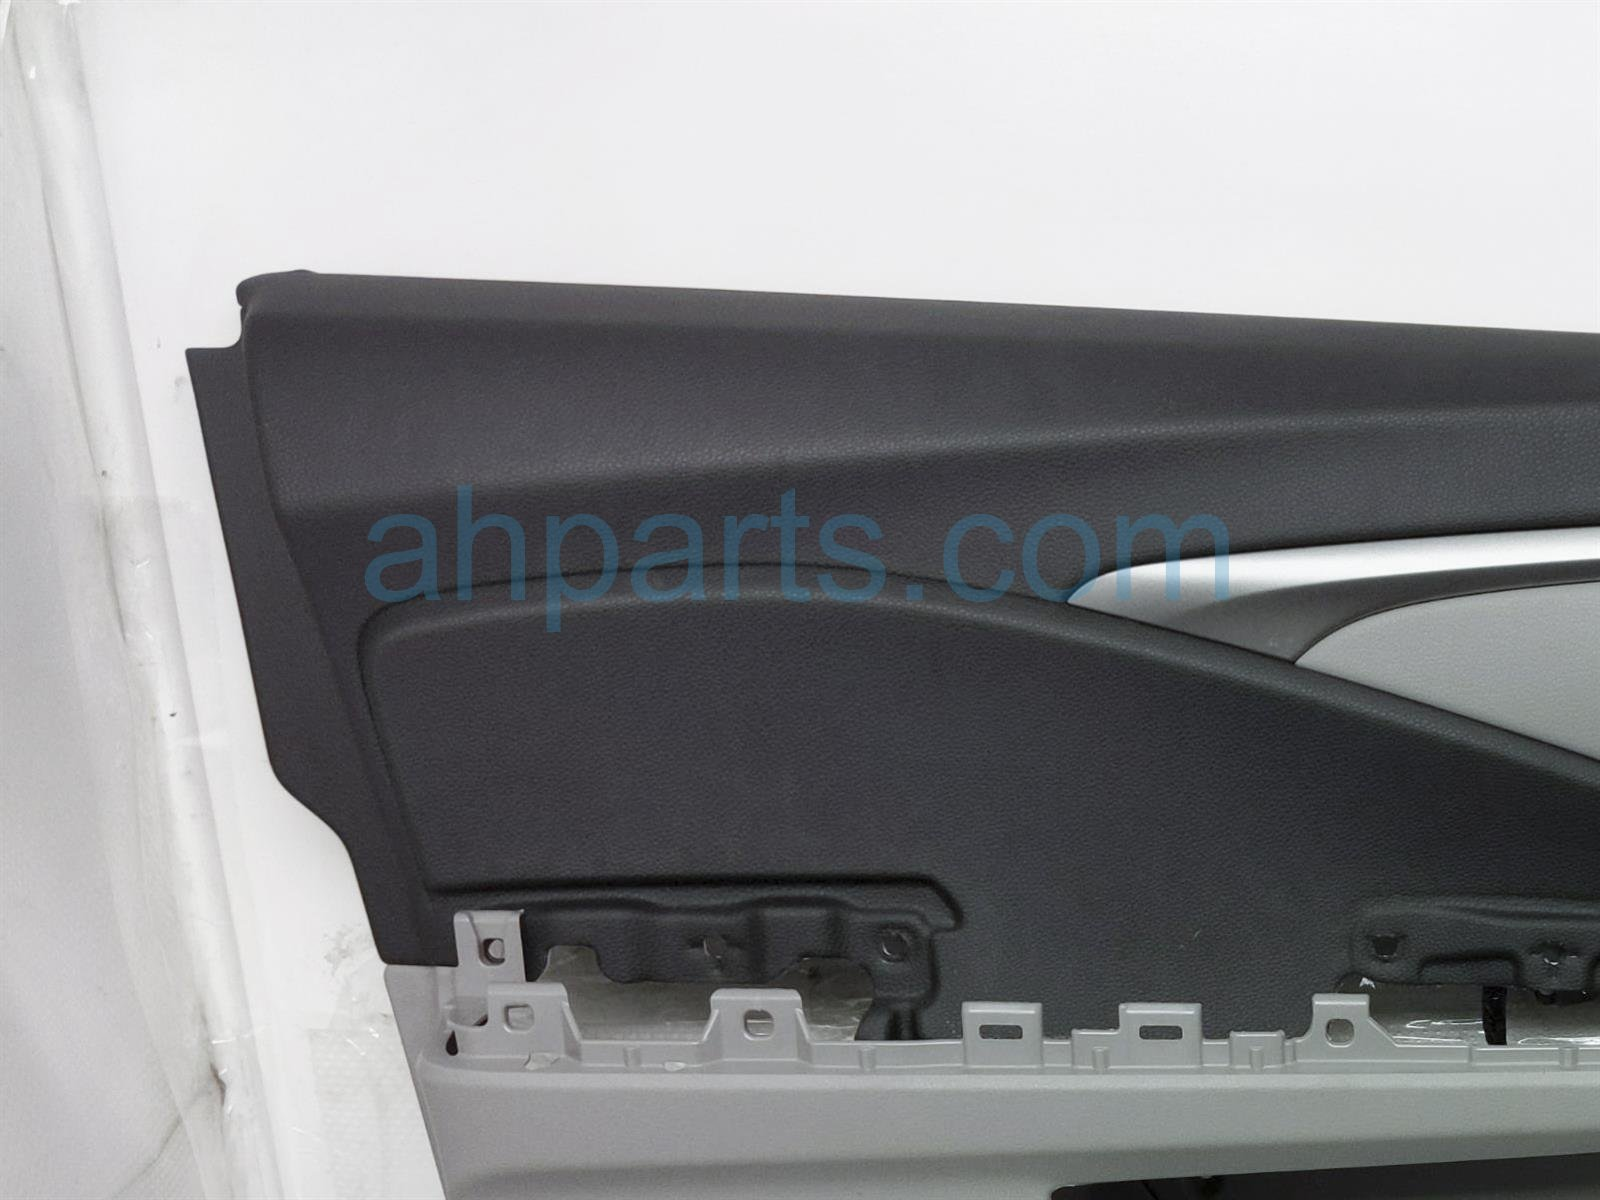 2017 Honda Pilot Trim Liner Front Driver Interior Door Panel   Grey/blk 83551 TG7 A01 Replacement